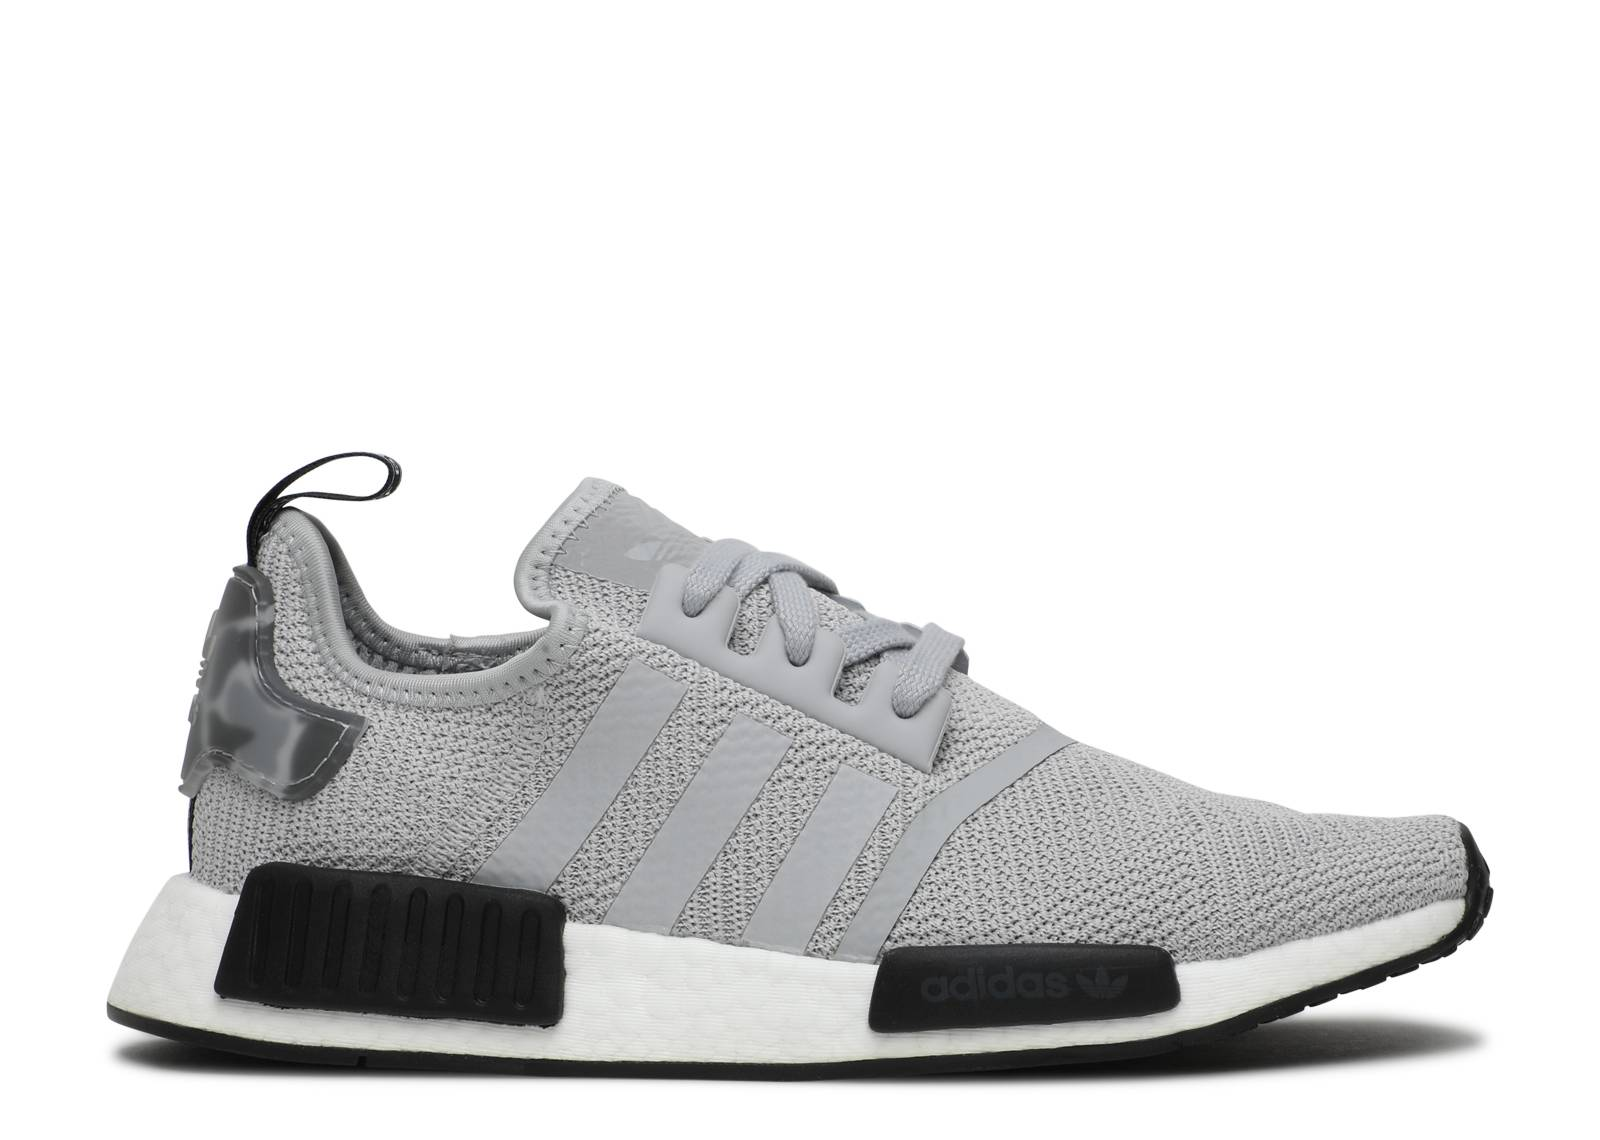 f497252bde28 Adidas NMD - adidas Originals Men s   Women s Shoes